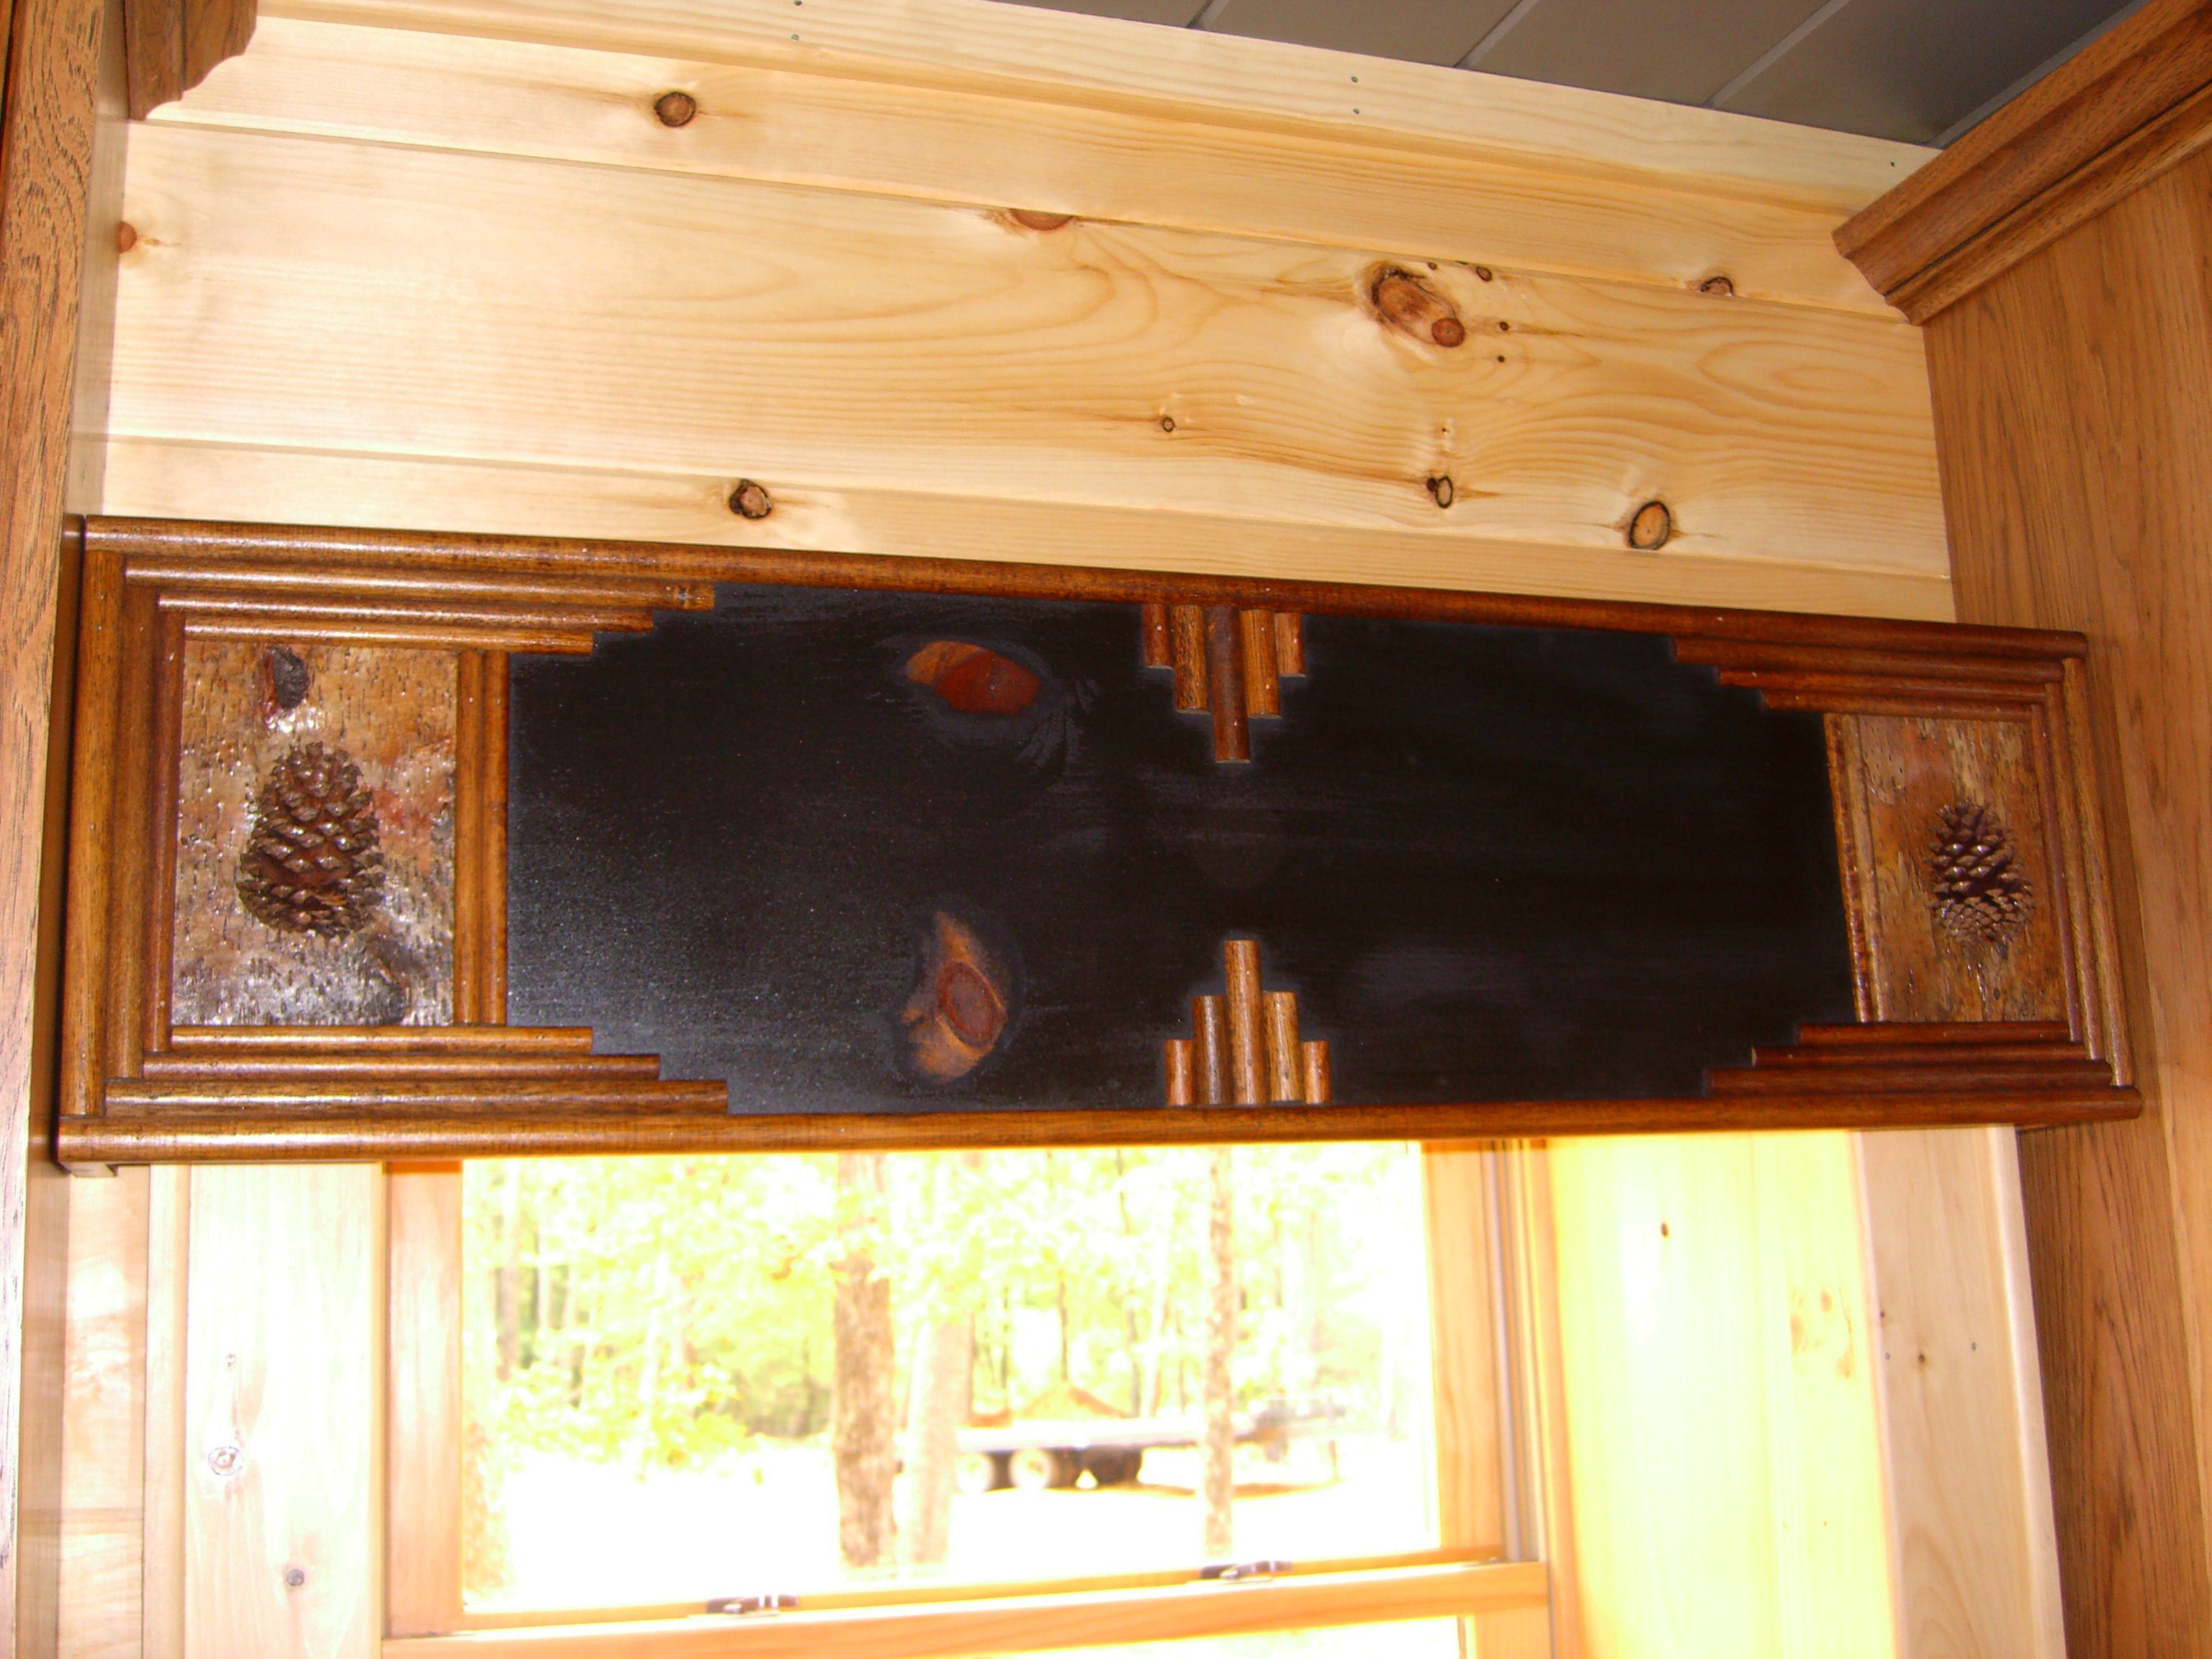 Black Cornice Board Made To Fit Between Cabinetry Of Kitchen For A Client Rustic Window Treatments Kitchen Cornice Rustic Window